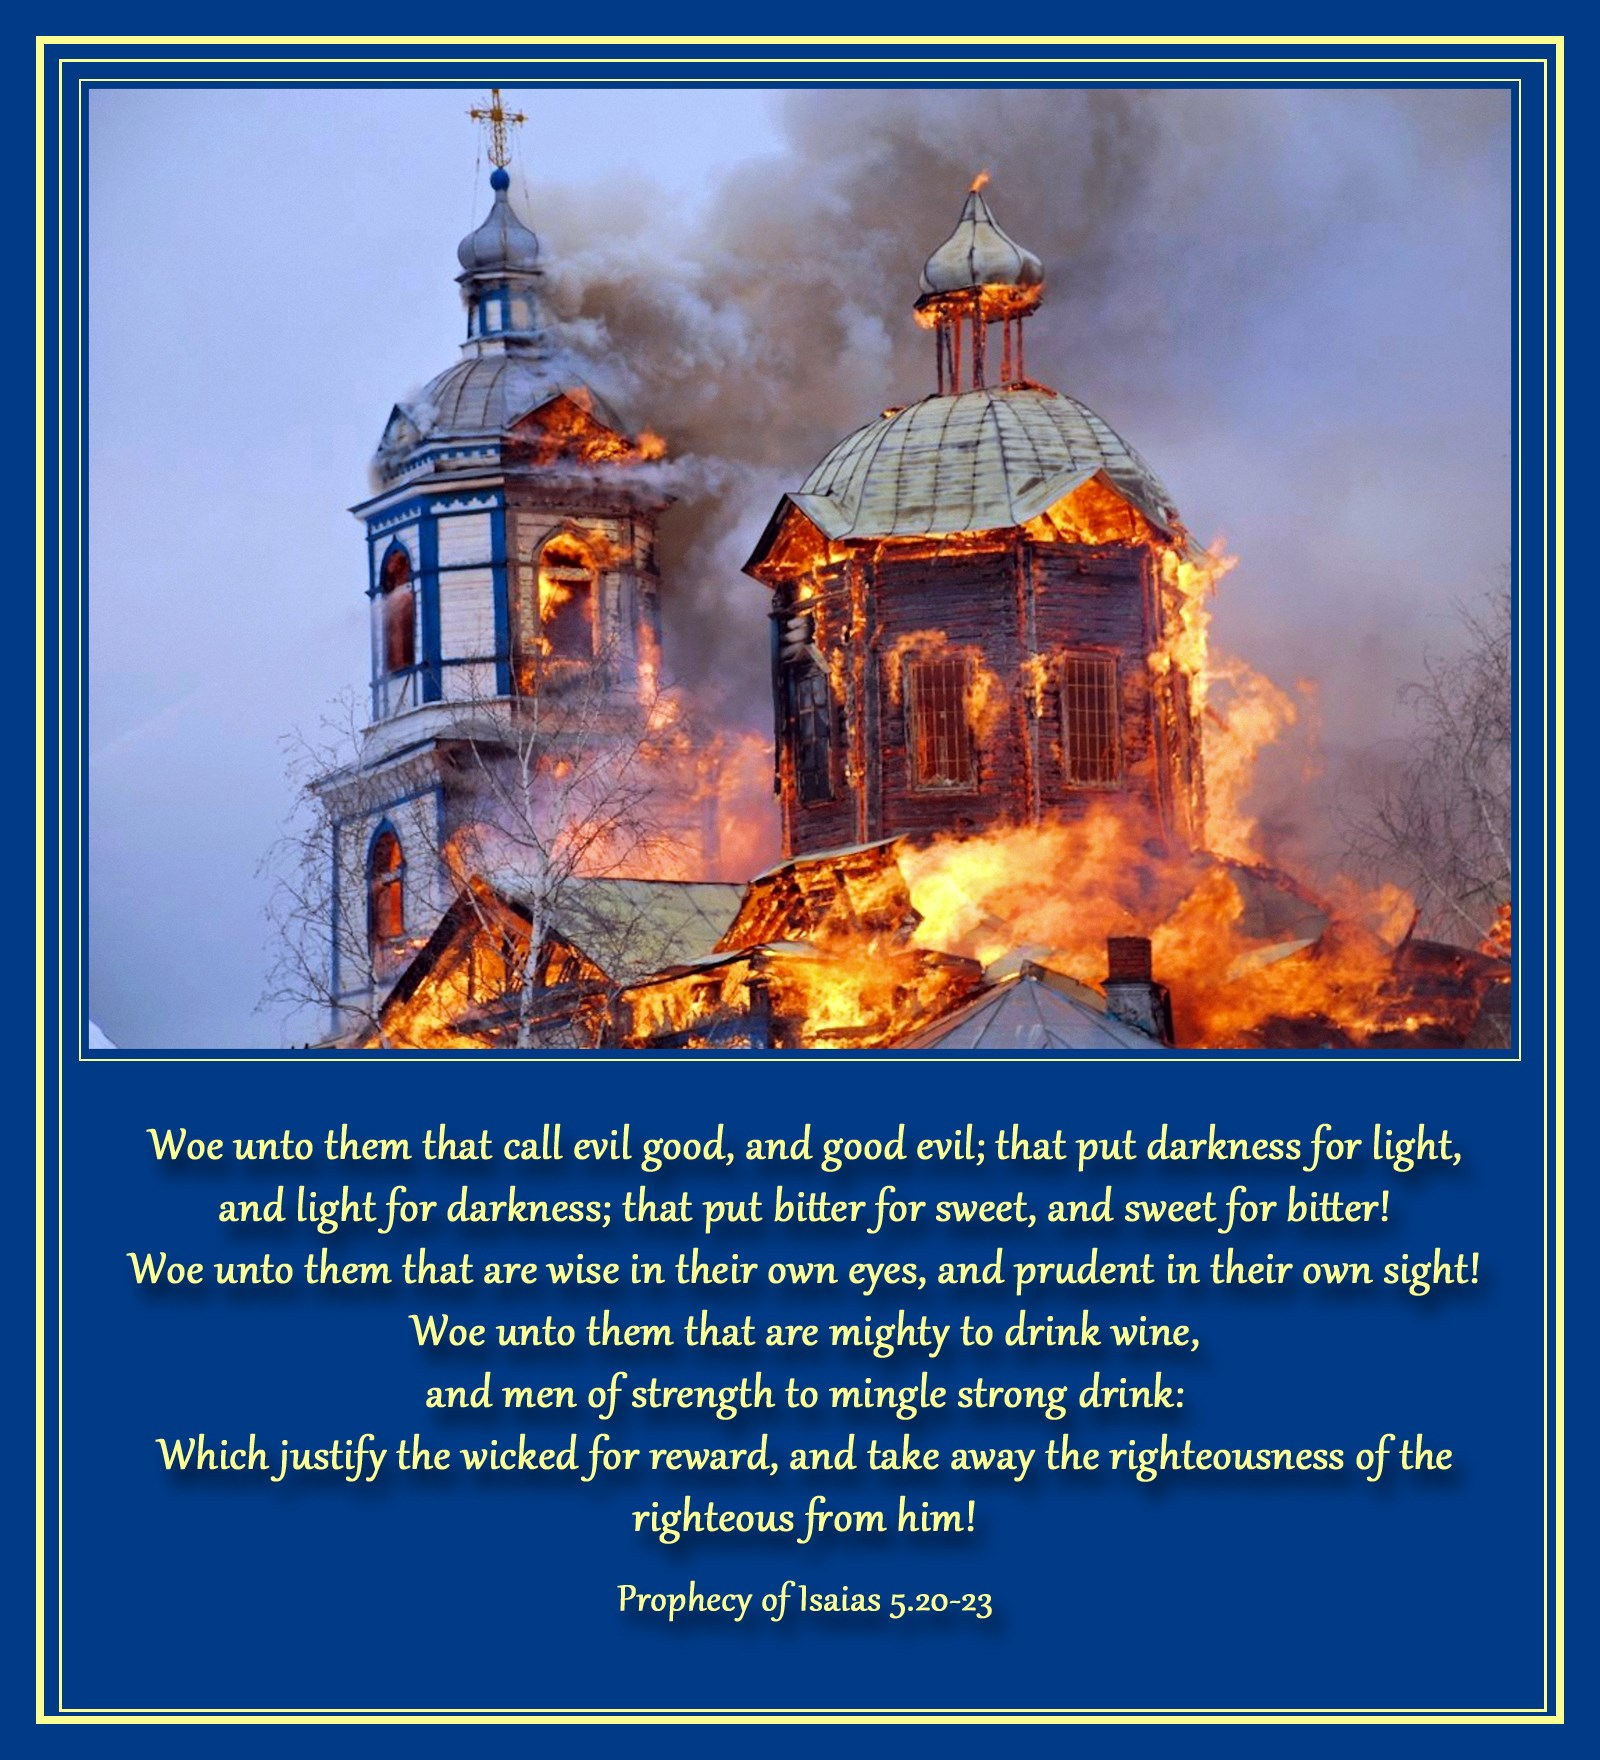 00 burning russian church in novorossiya. 25.04.15